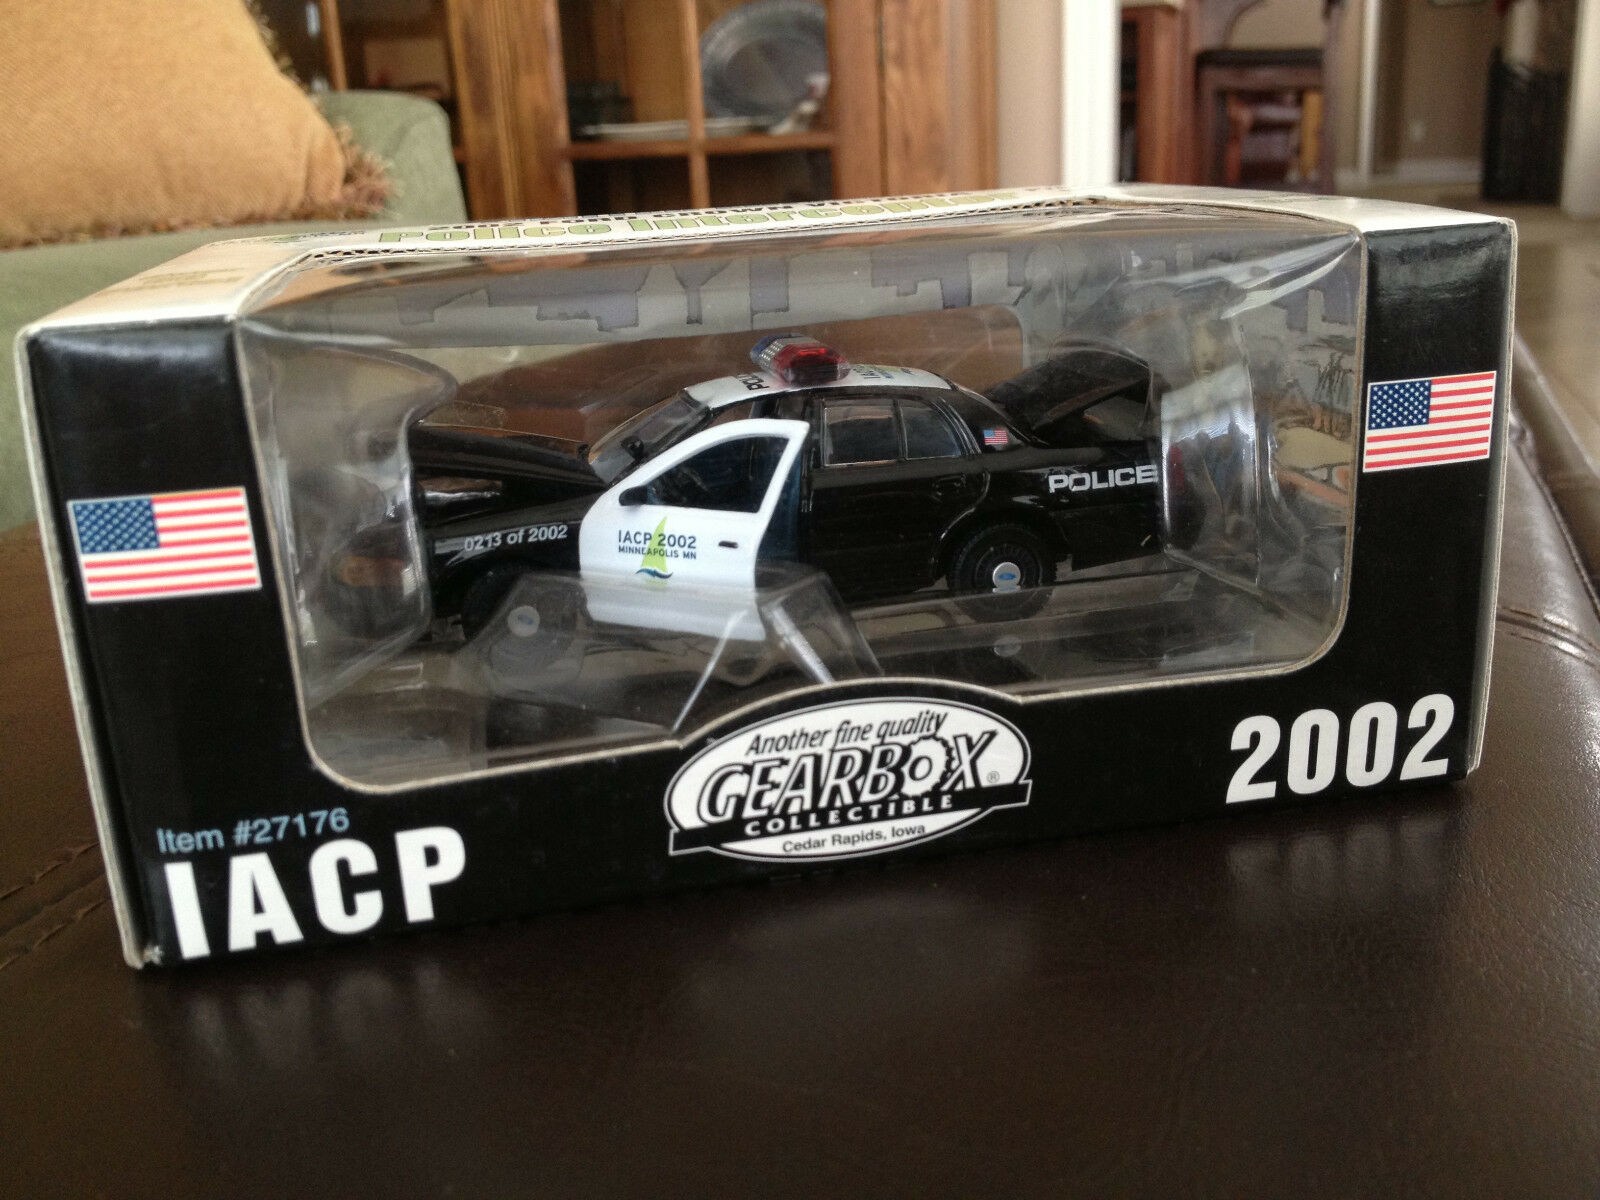 Minneapolis Police Interceptor 2002 IACP Gearbox Limited Edt.  0213 of 2002 MIB